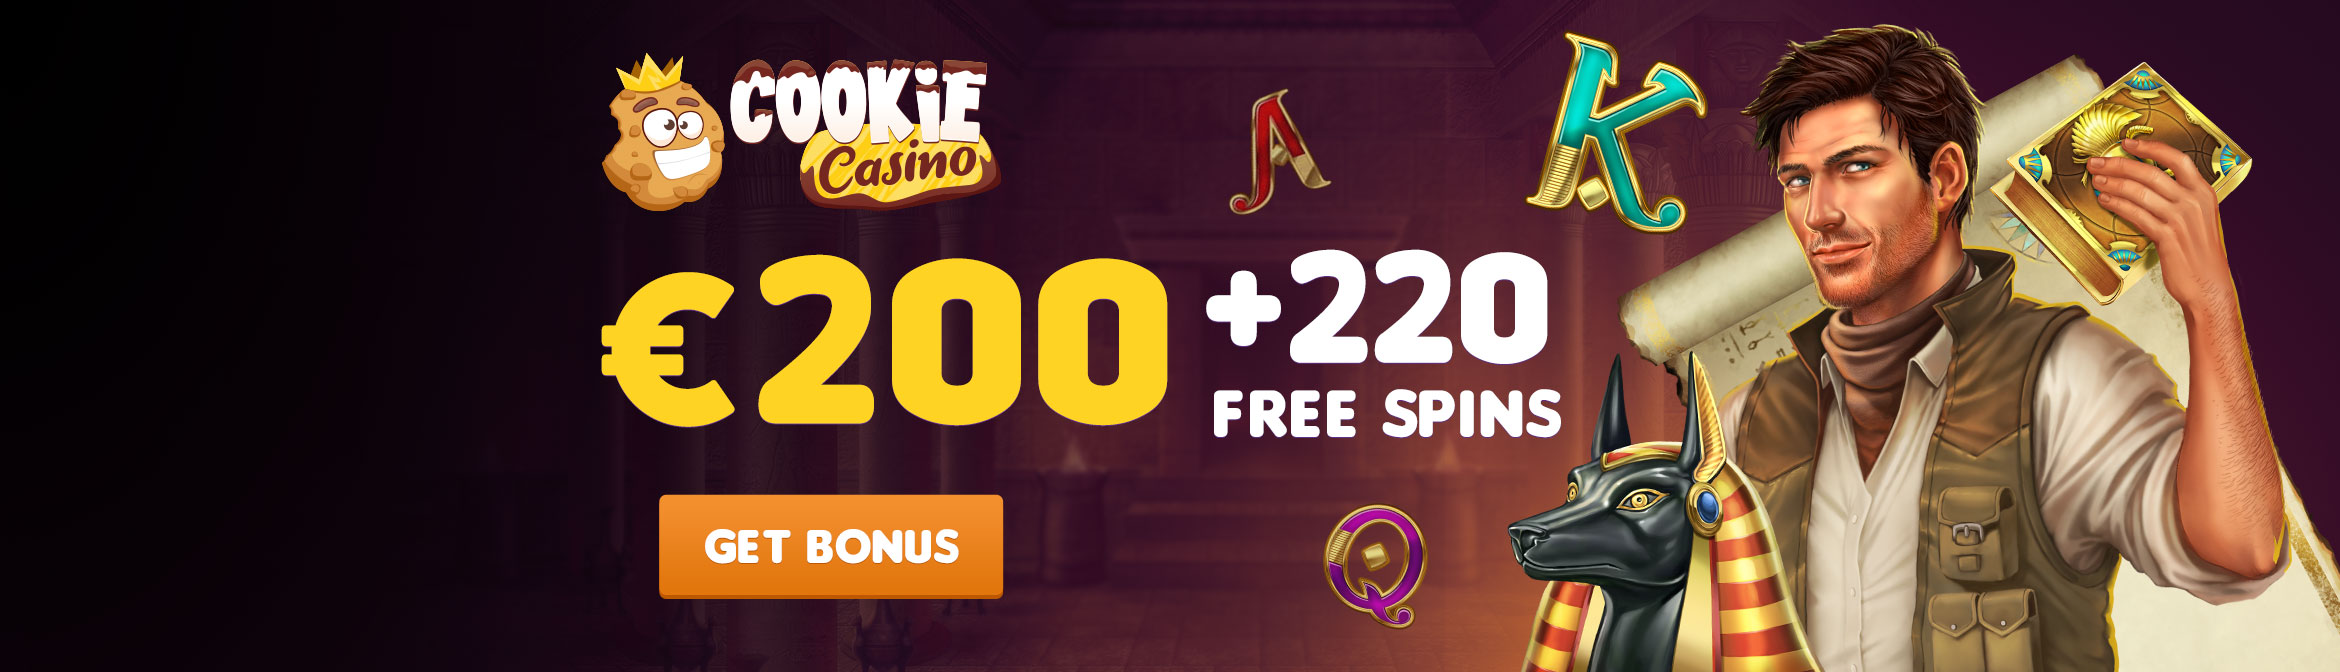 Cookie Casino Header Banner